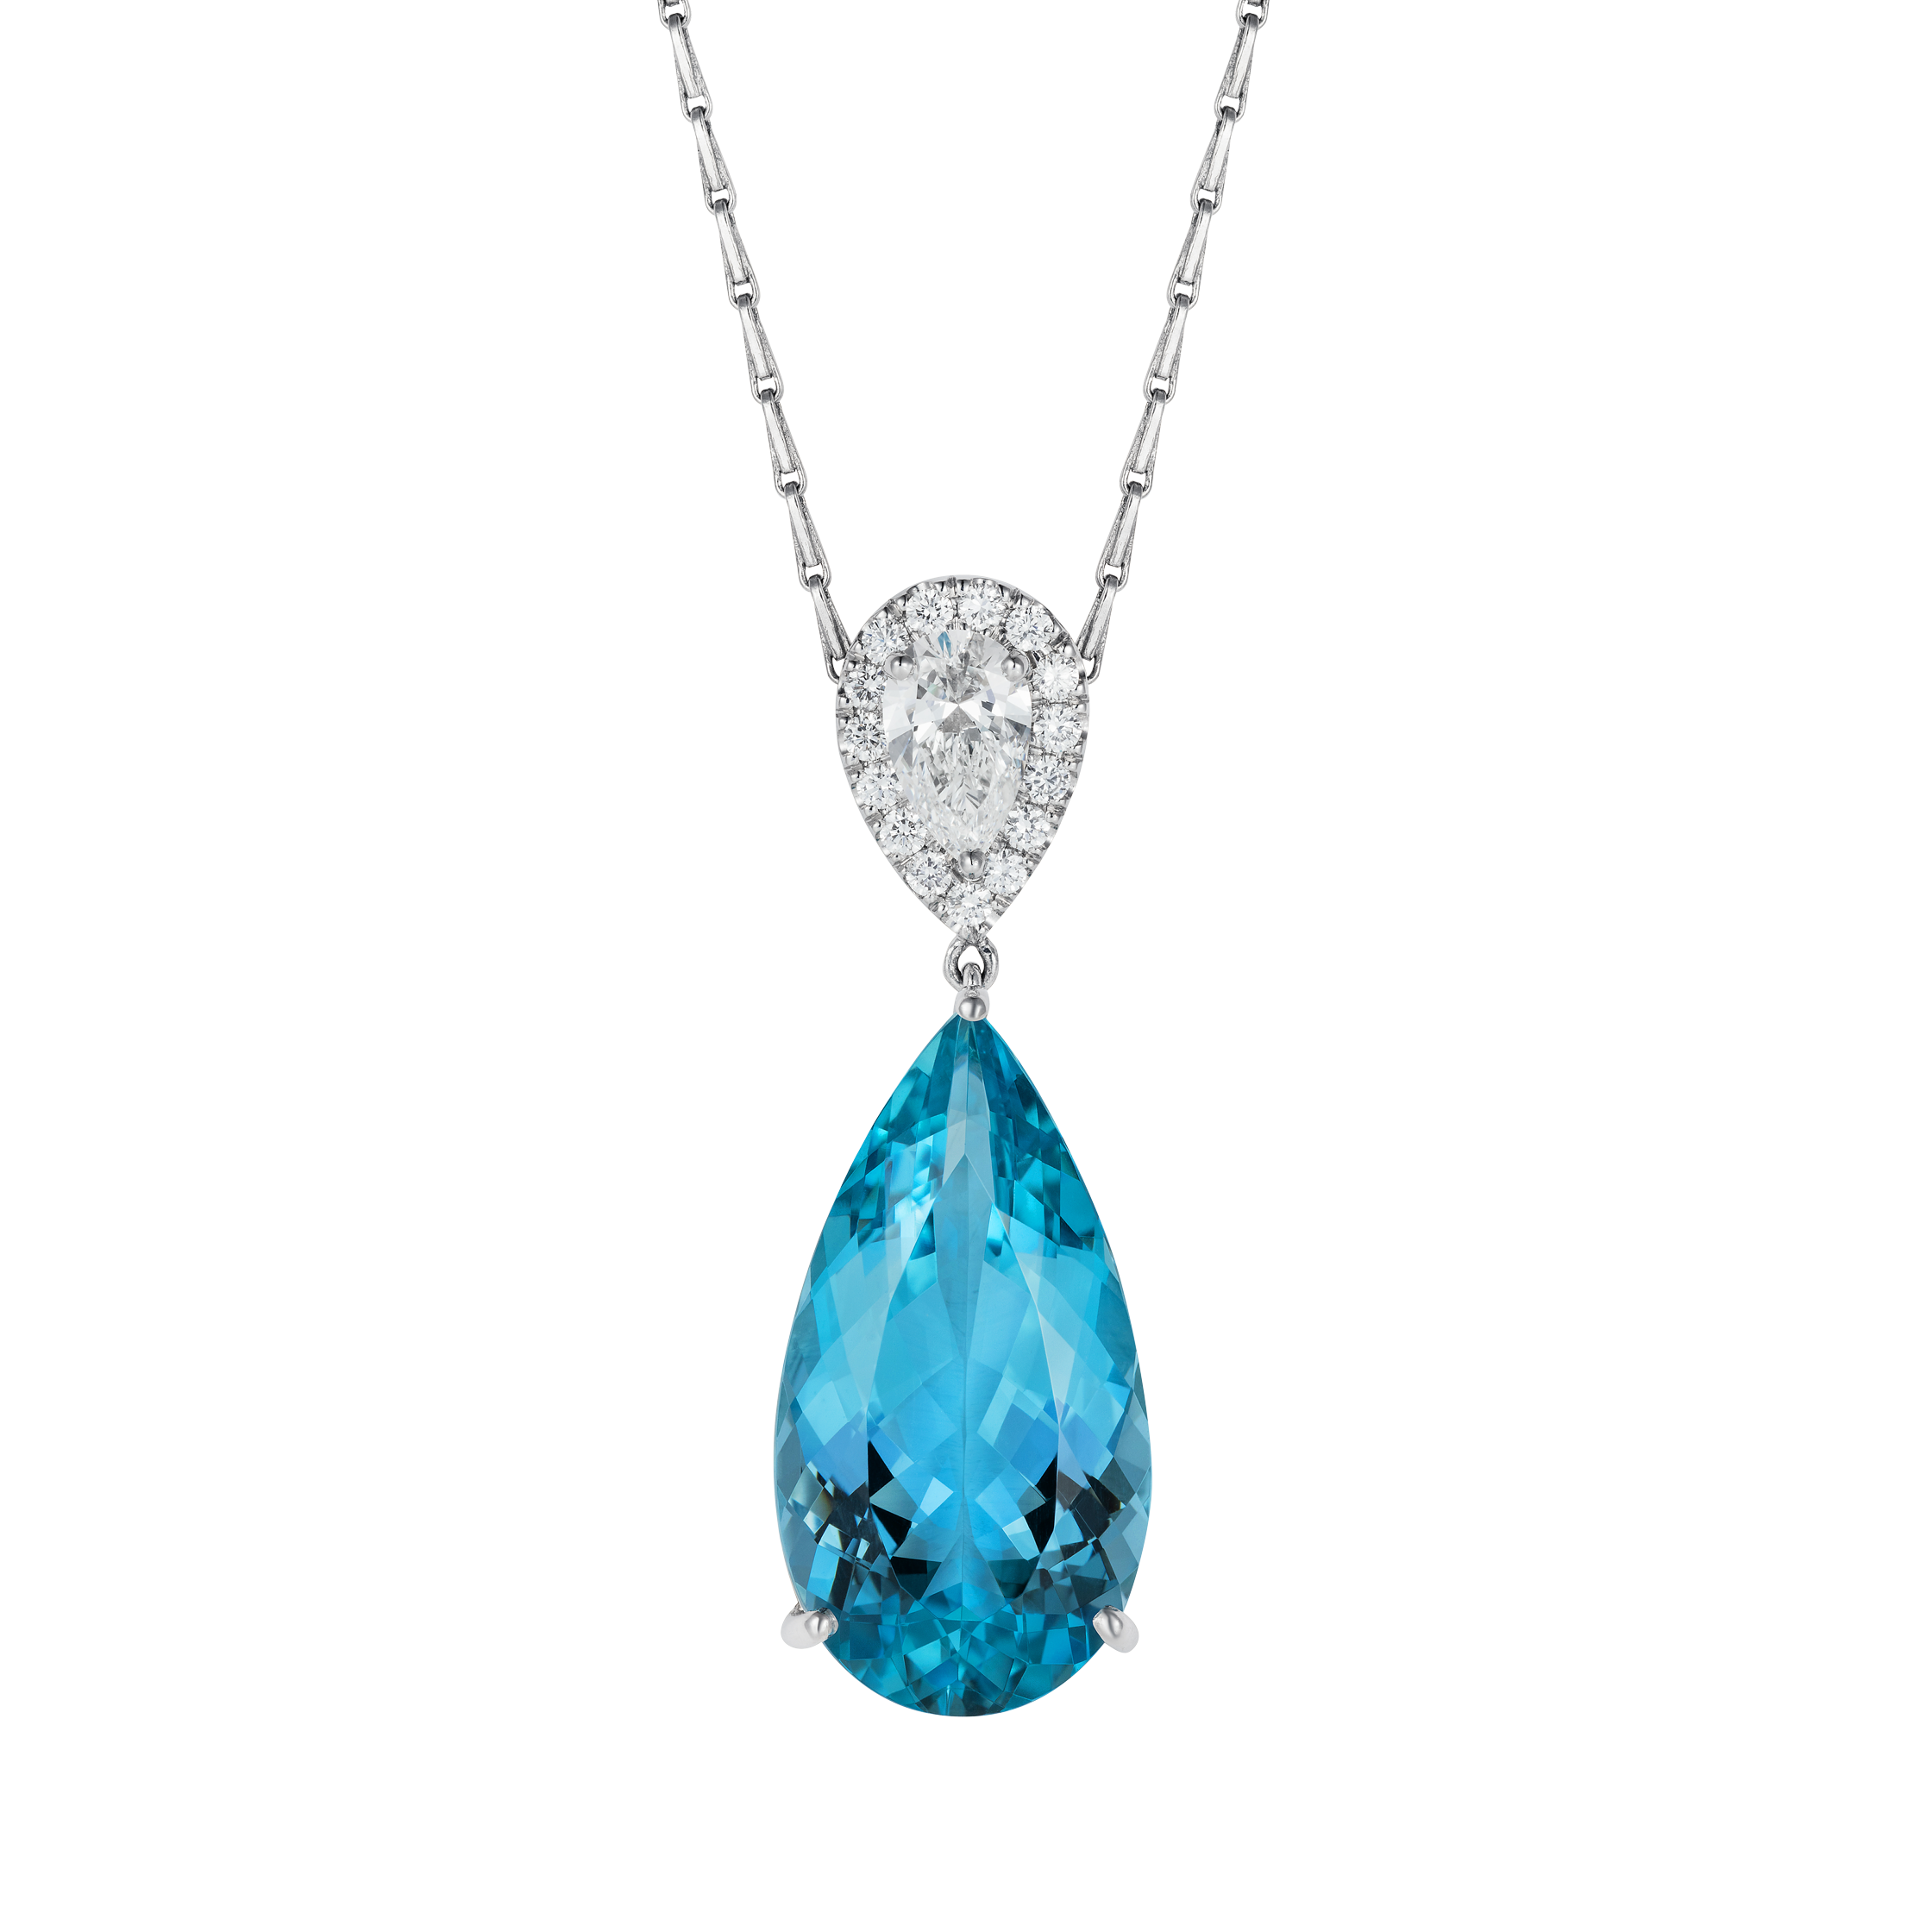 march aquamarine necklaces cz birthstone hiho zoom loading pendant necklace silver sterling